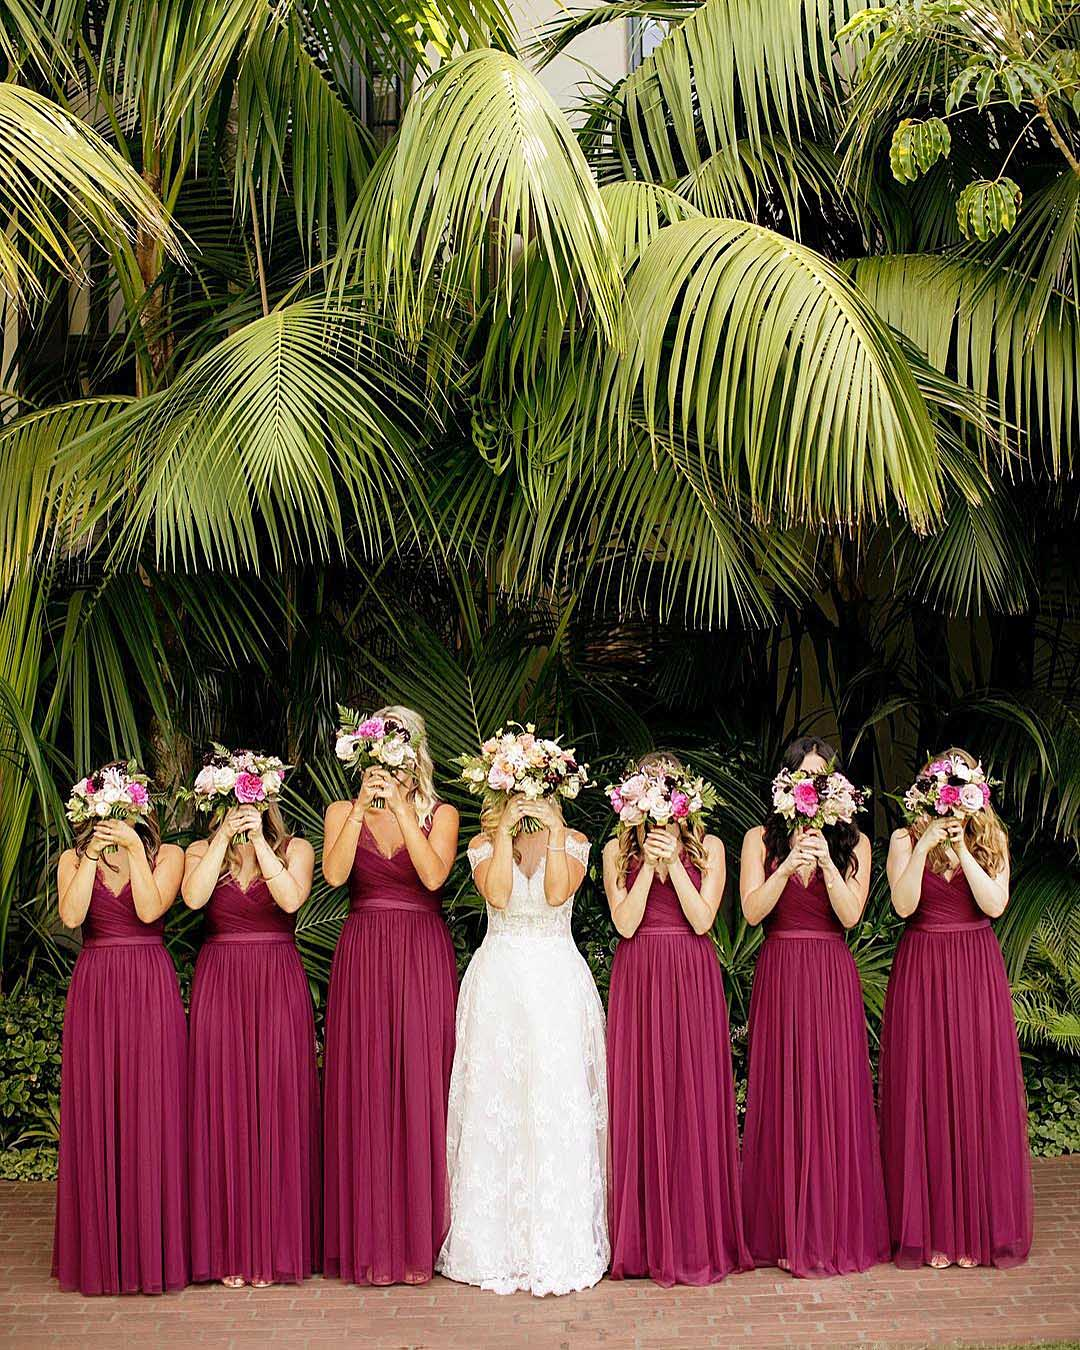 wedding colors Lilac Blush Pink Vintage Yellow bride and bridesmaids covering with bouquets